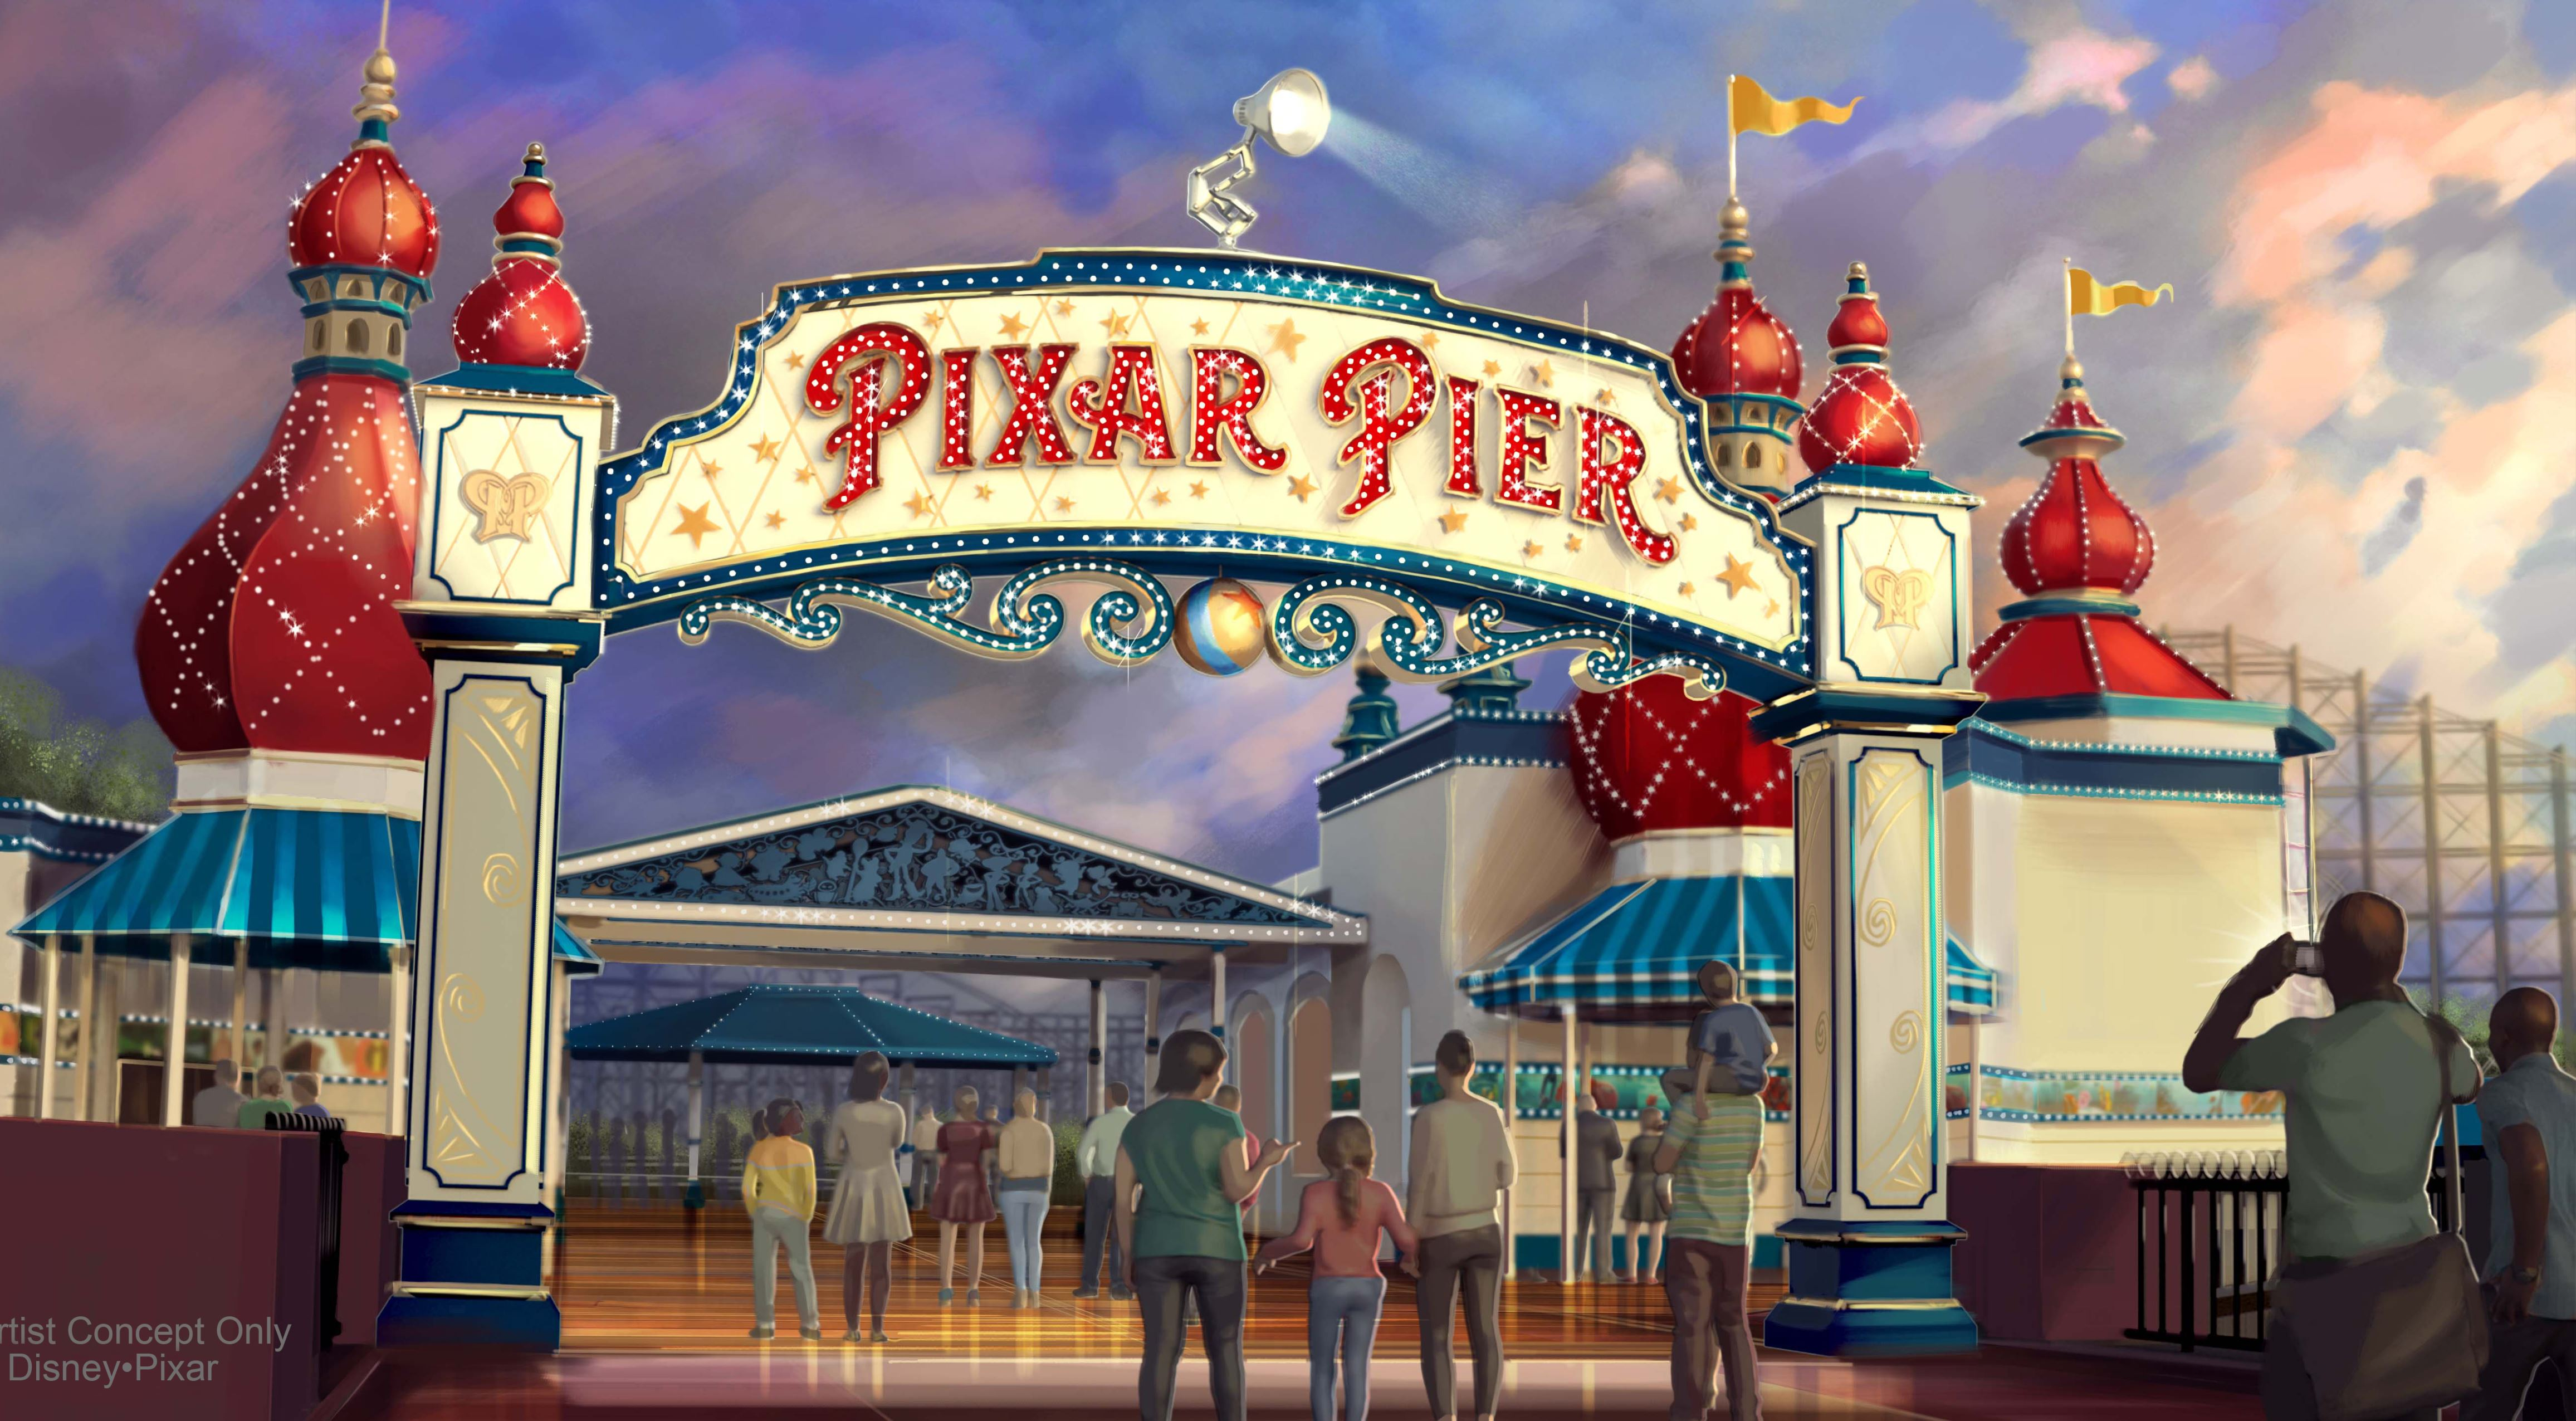 Slide 11 of 15: PIXAR PIER MARQUEE AT DISNEY CALIFORNIA ADVENTURE (ANAHEIM, Calif.) Ð When Pixar Pier opens on June 23 at Disney California Adventure park, guests will enter the permanent new land through a dazzling new Pixar Pier marquee. This reimagined land will feature four whimsical neighborhoods representing beloved Pixar stories with newly themed attractions, foods and merchandise. The Pixar Pier marquee will be topped with the iconic Pixar lamp later in the year. (Disney¥Pixar/Disneyland Resort)